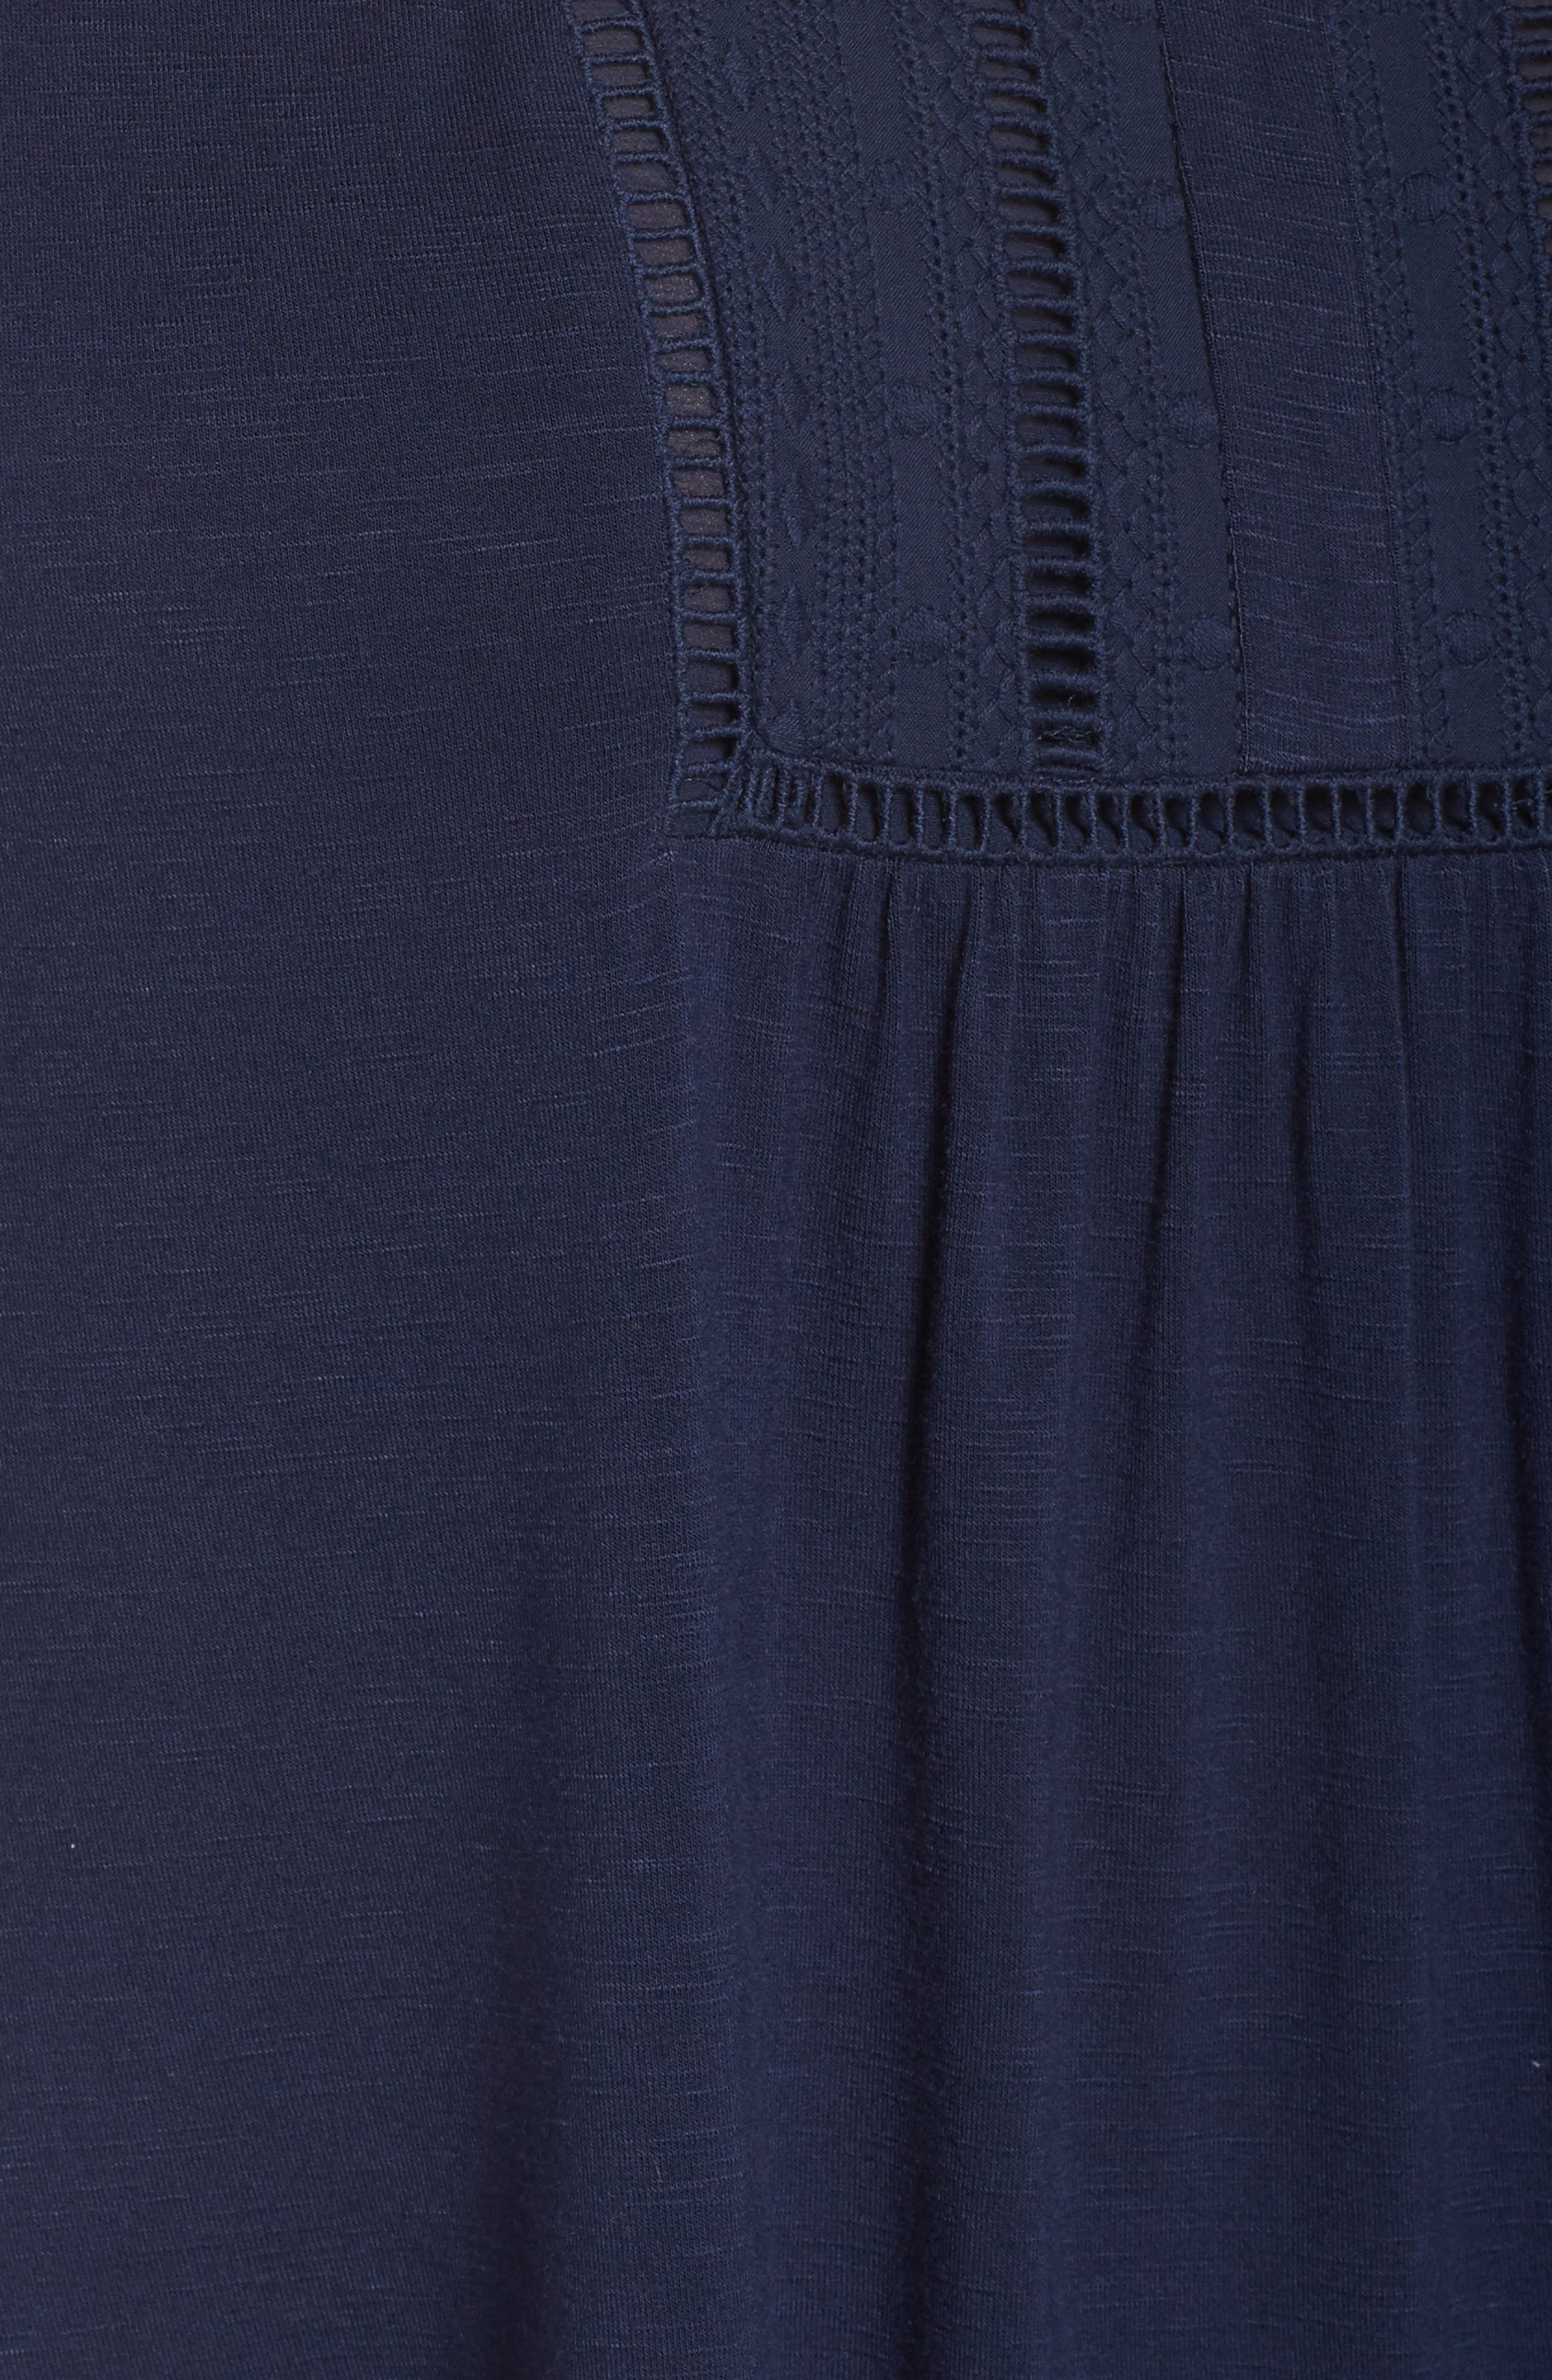 Embroidered Yoke Top,                             Alternate thumbnail 6, color,                             401